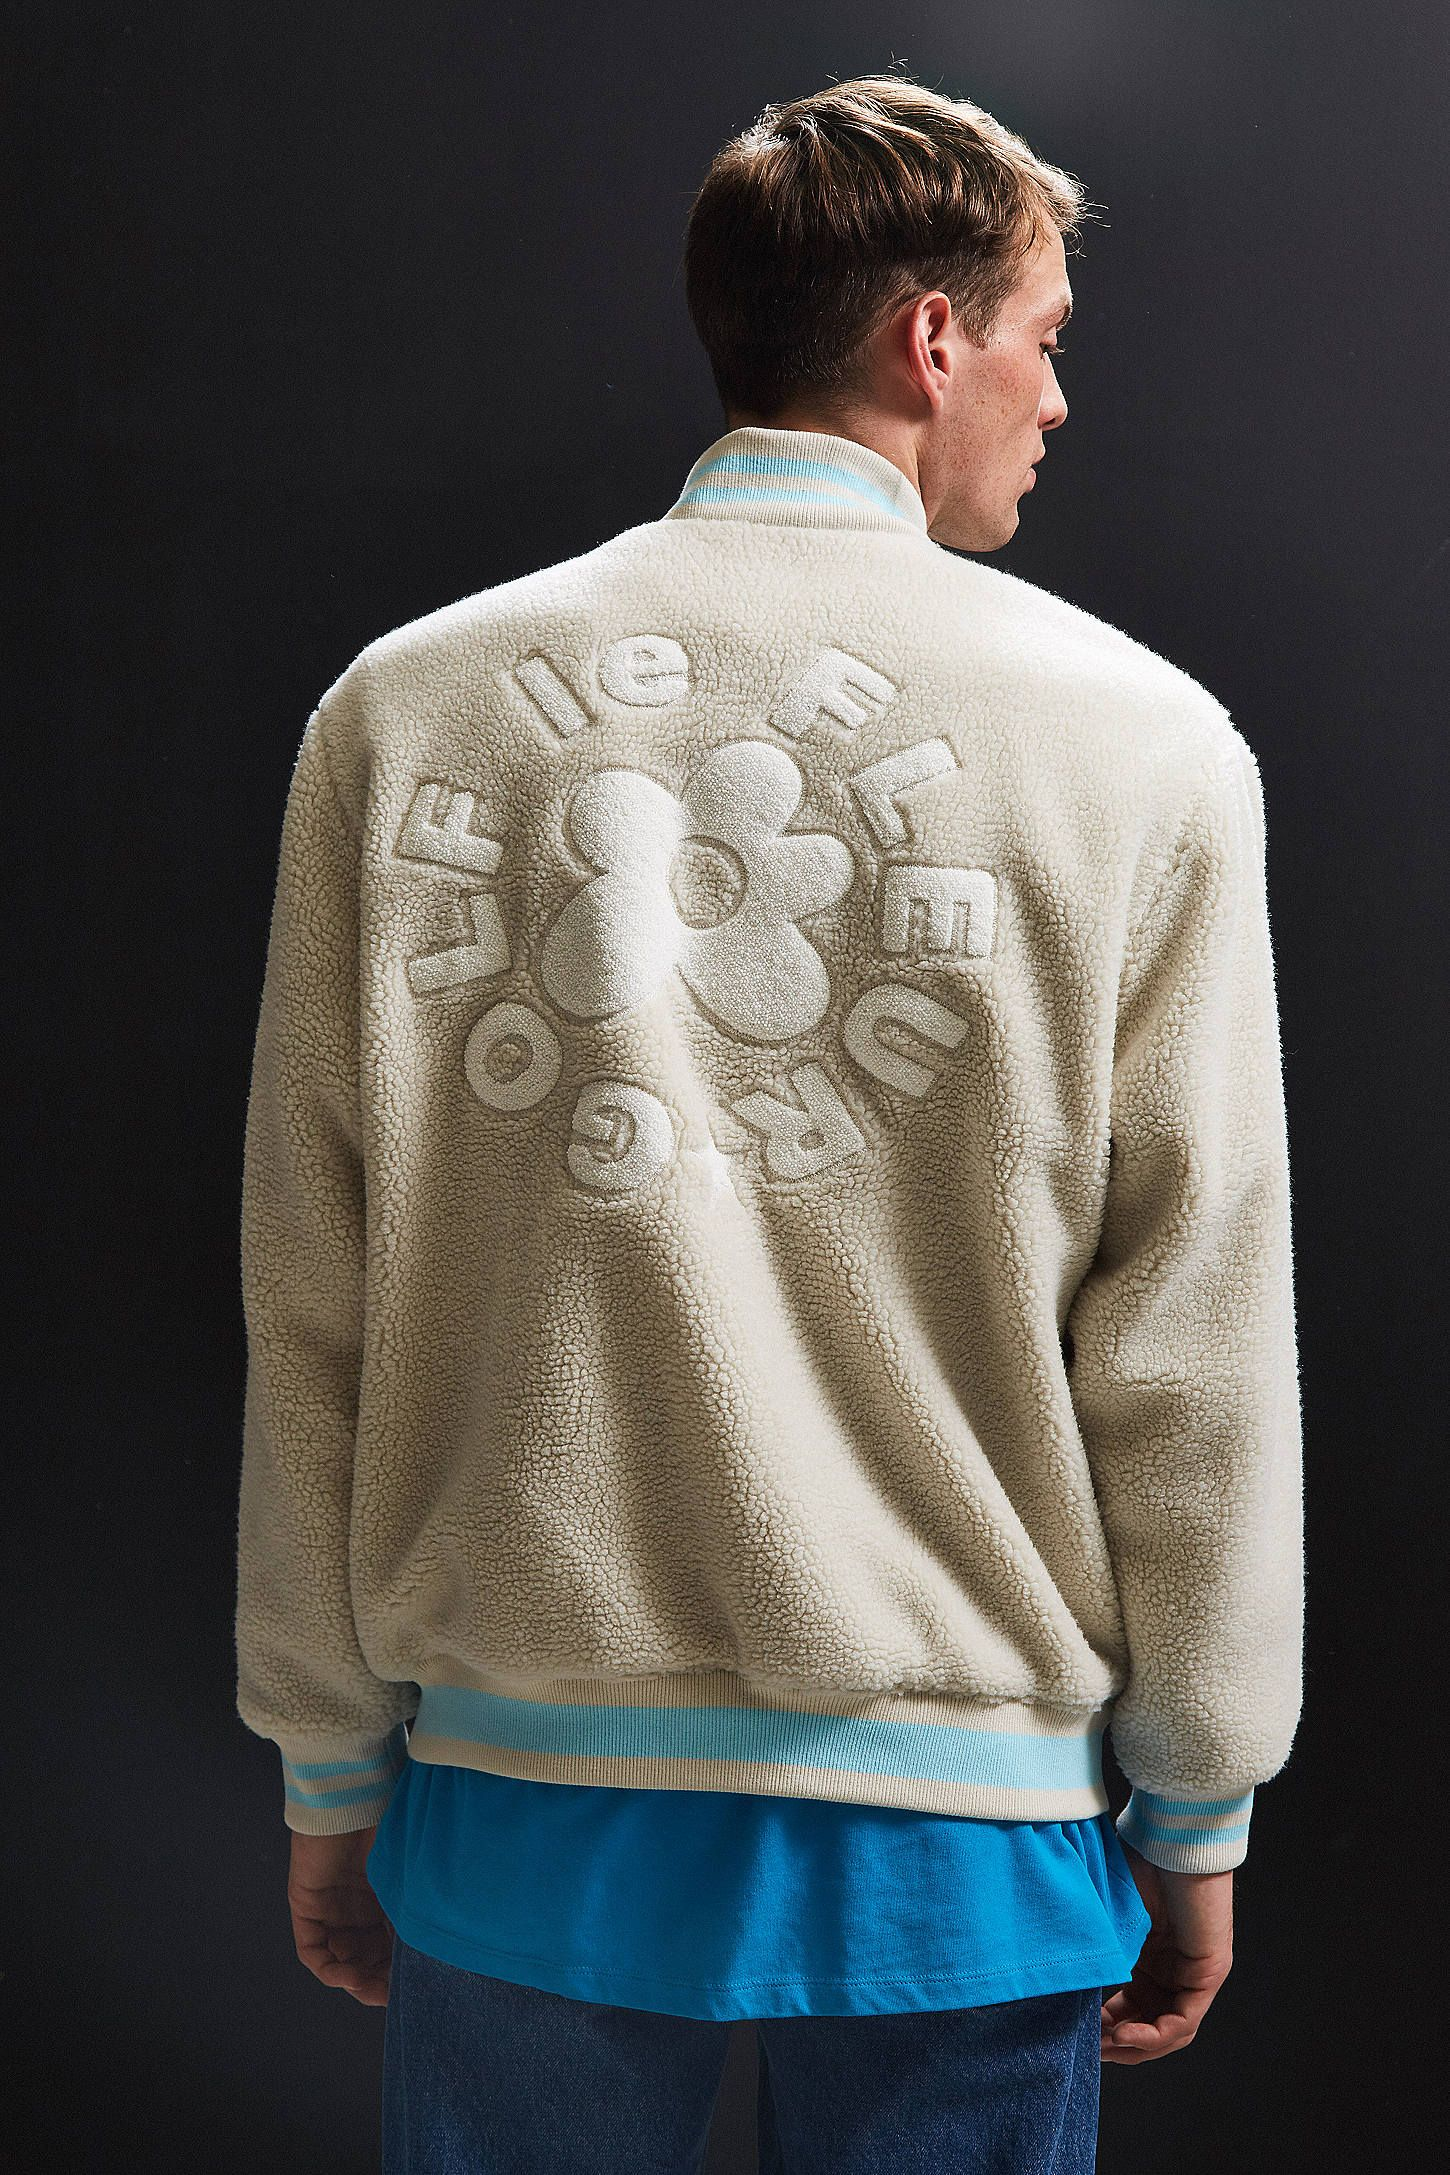 72ca15e6fff4 Shop Converse X Golf Le Fleur Sherpa Varsity Jacket at Urban Outfitters  today. We carry all the latest styles